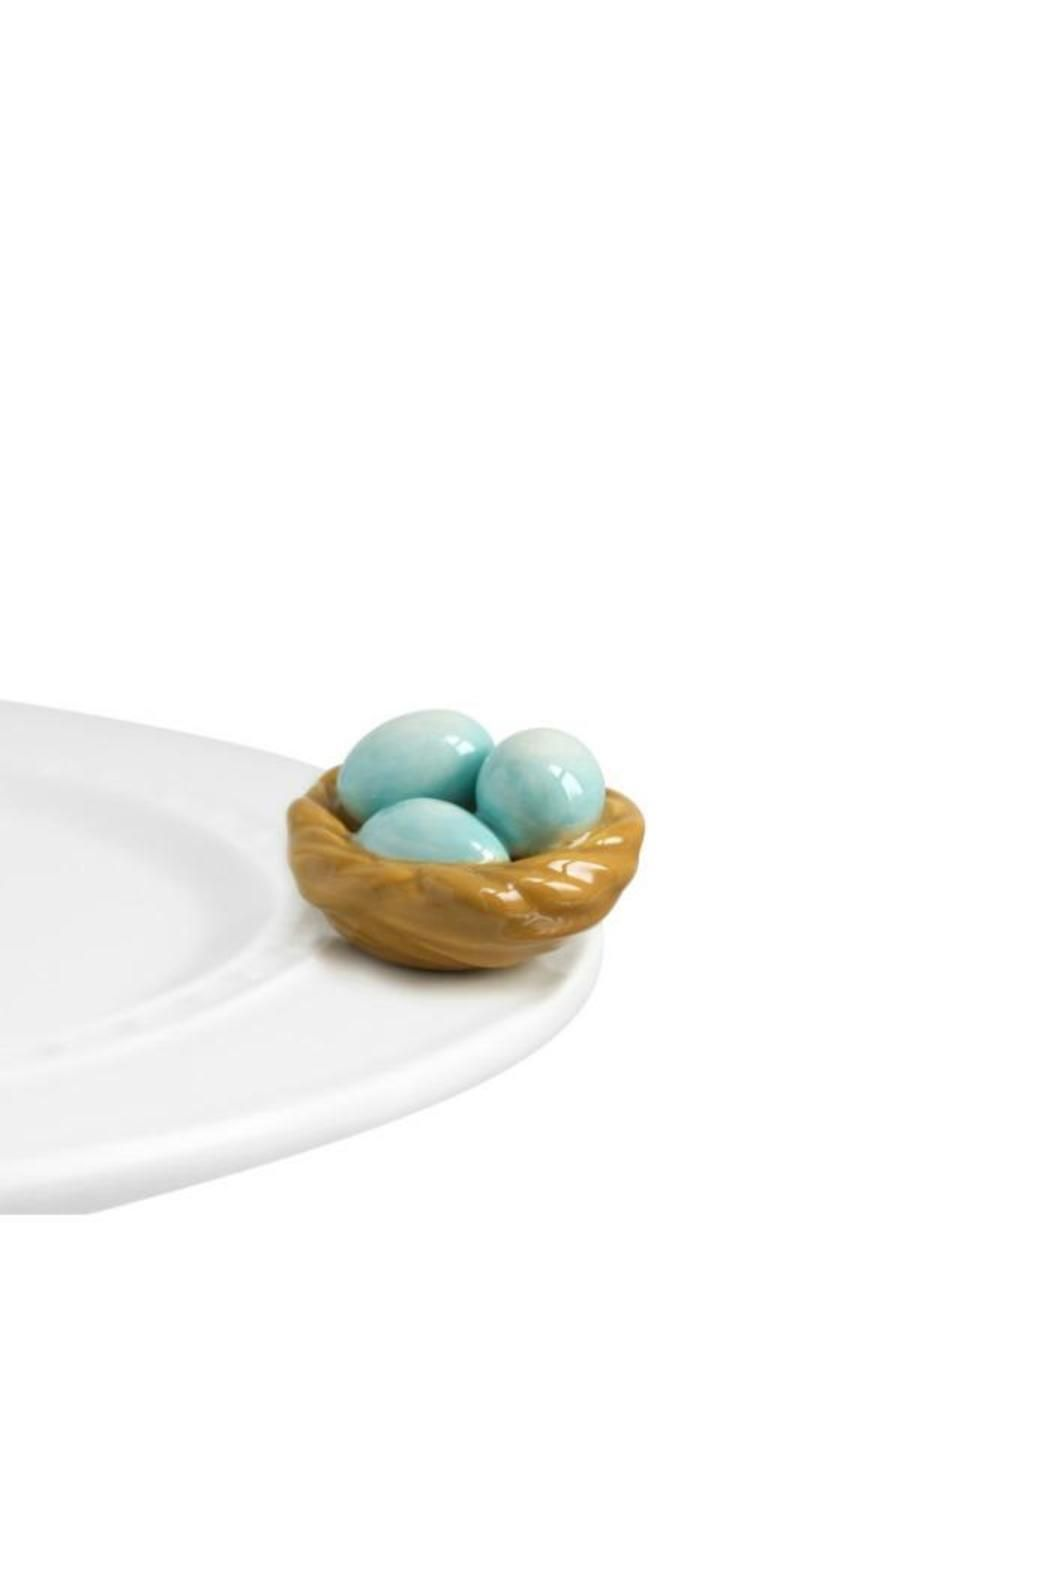 Add a little touch of spring to your next dinner party! Robin's Eggs Mini by Nora Fleming. Home & Gifts - Home Decor - Dining Kentucky